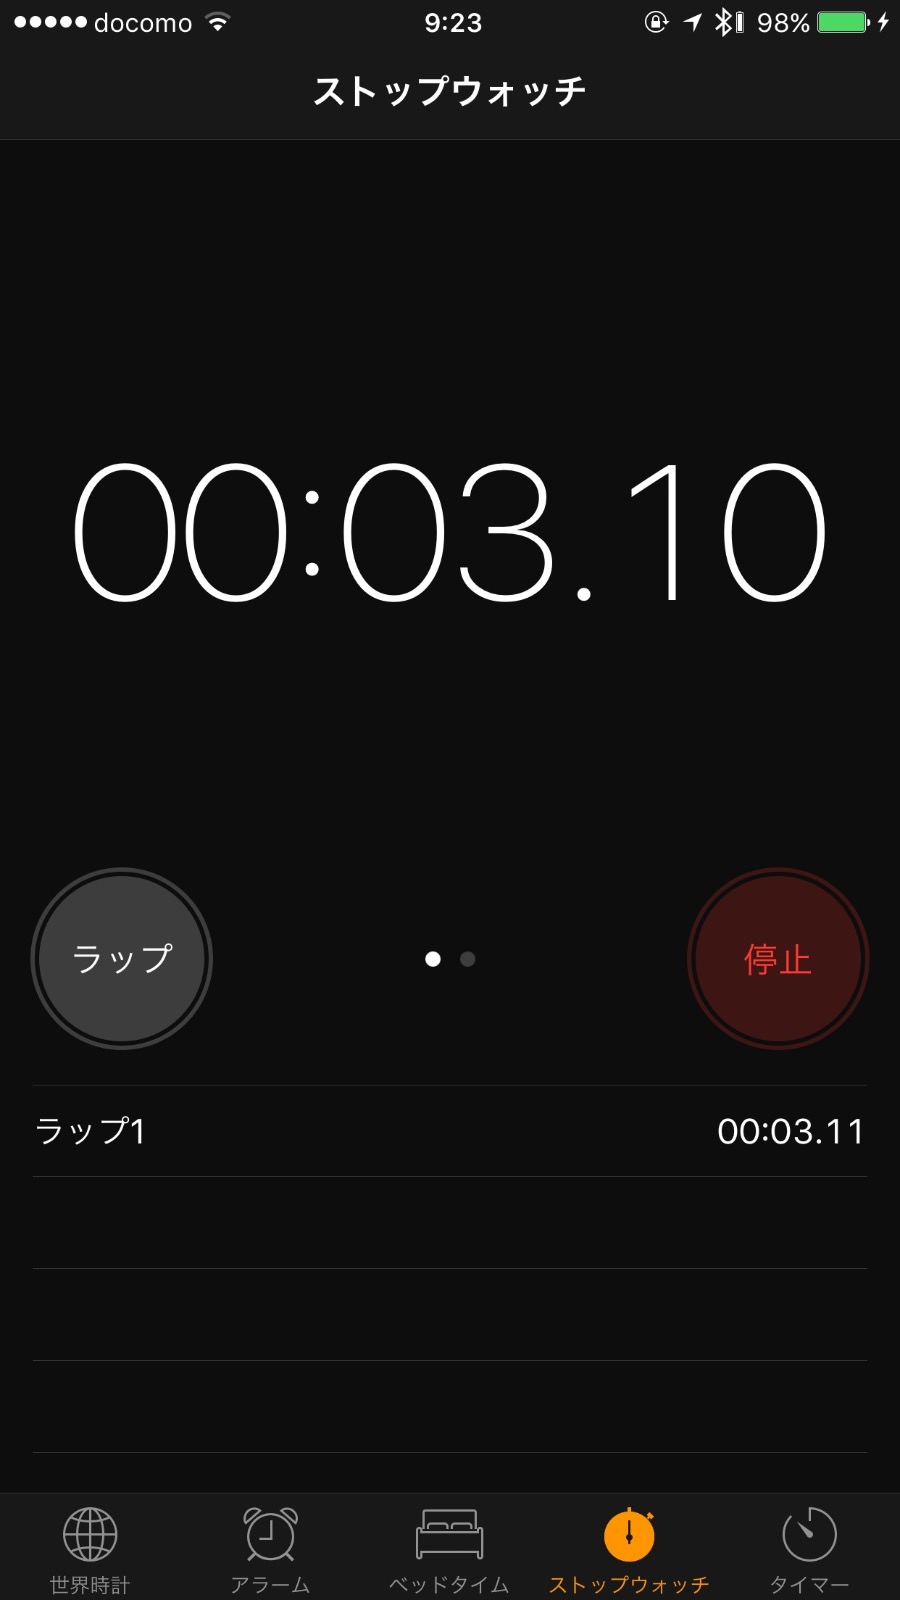 Iphone stop watch 9453